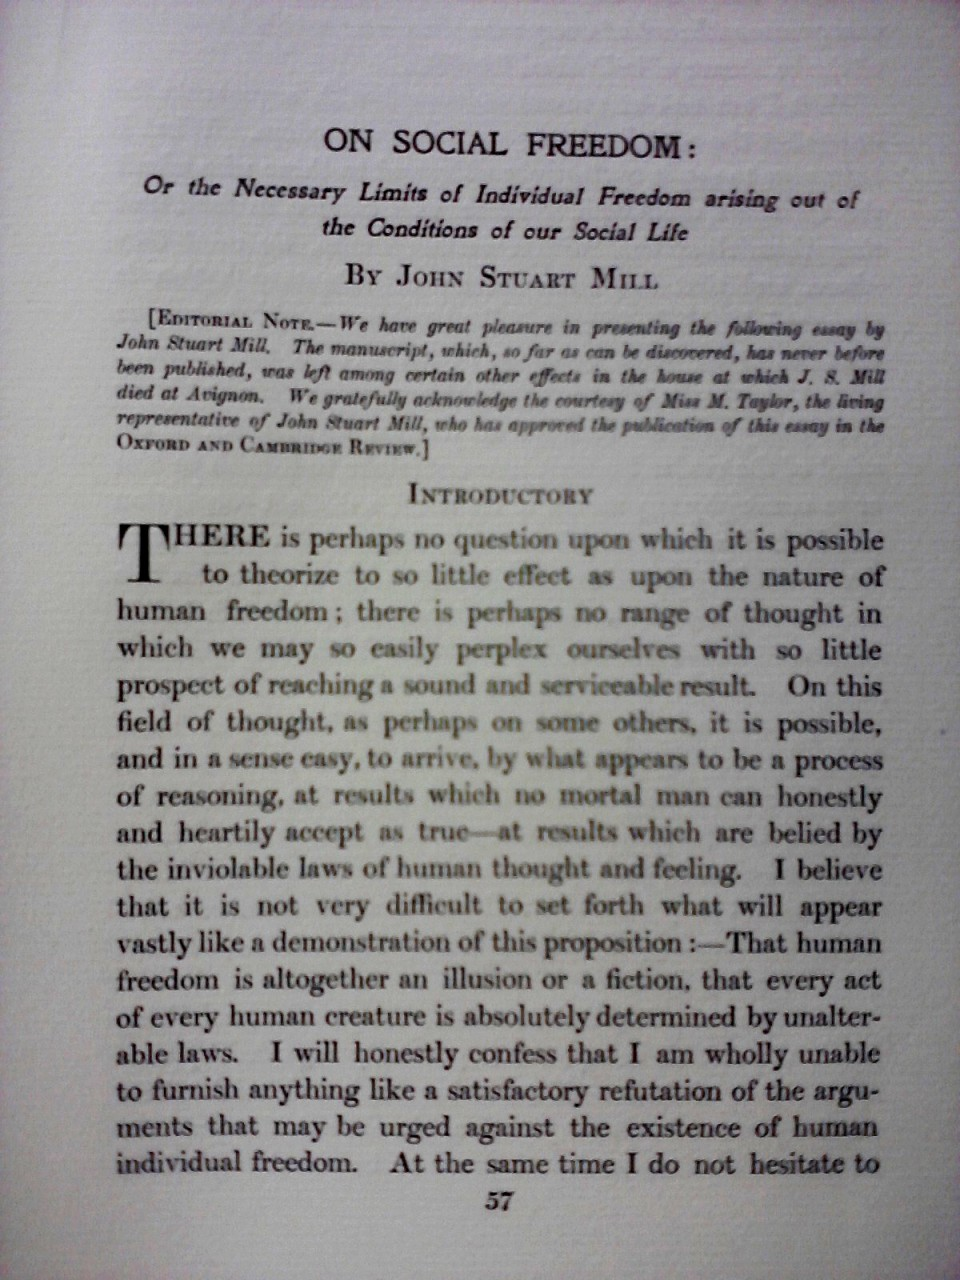 006 Essay Example Freedom Definition On Social In Oxford And Cambridge Review 1907 Rare Meaning Of Speech 960